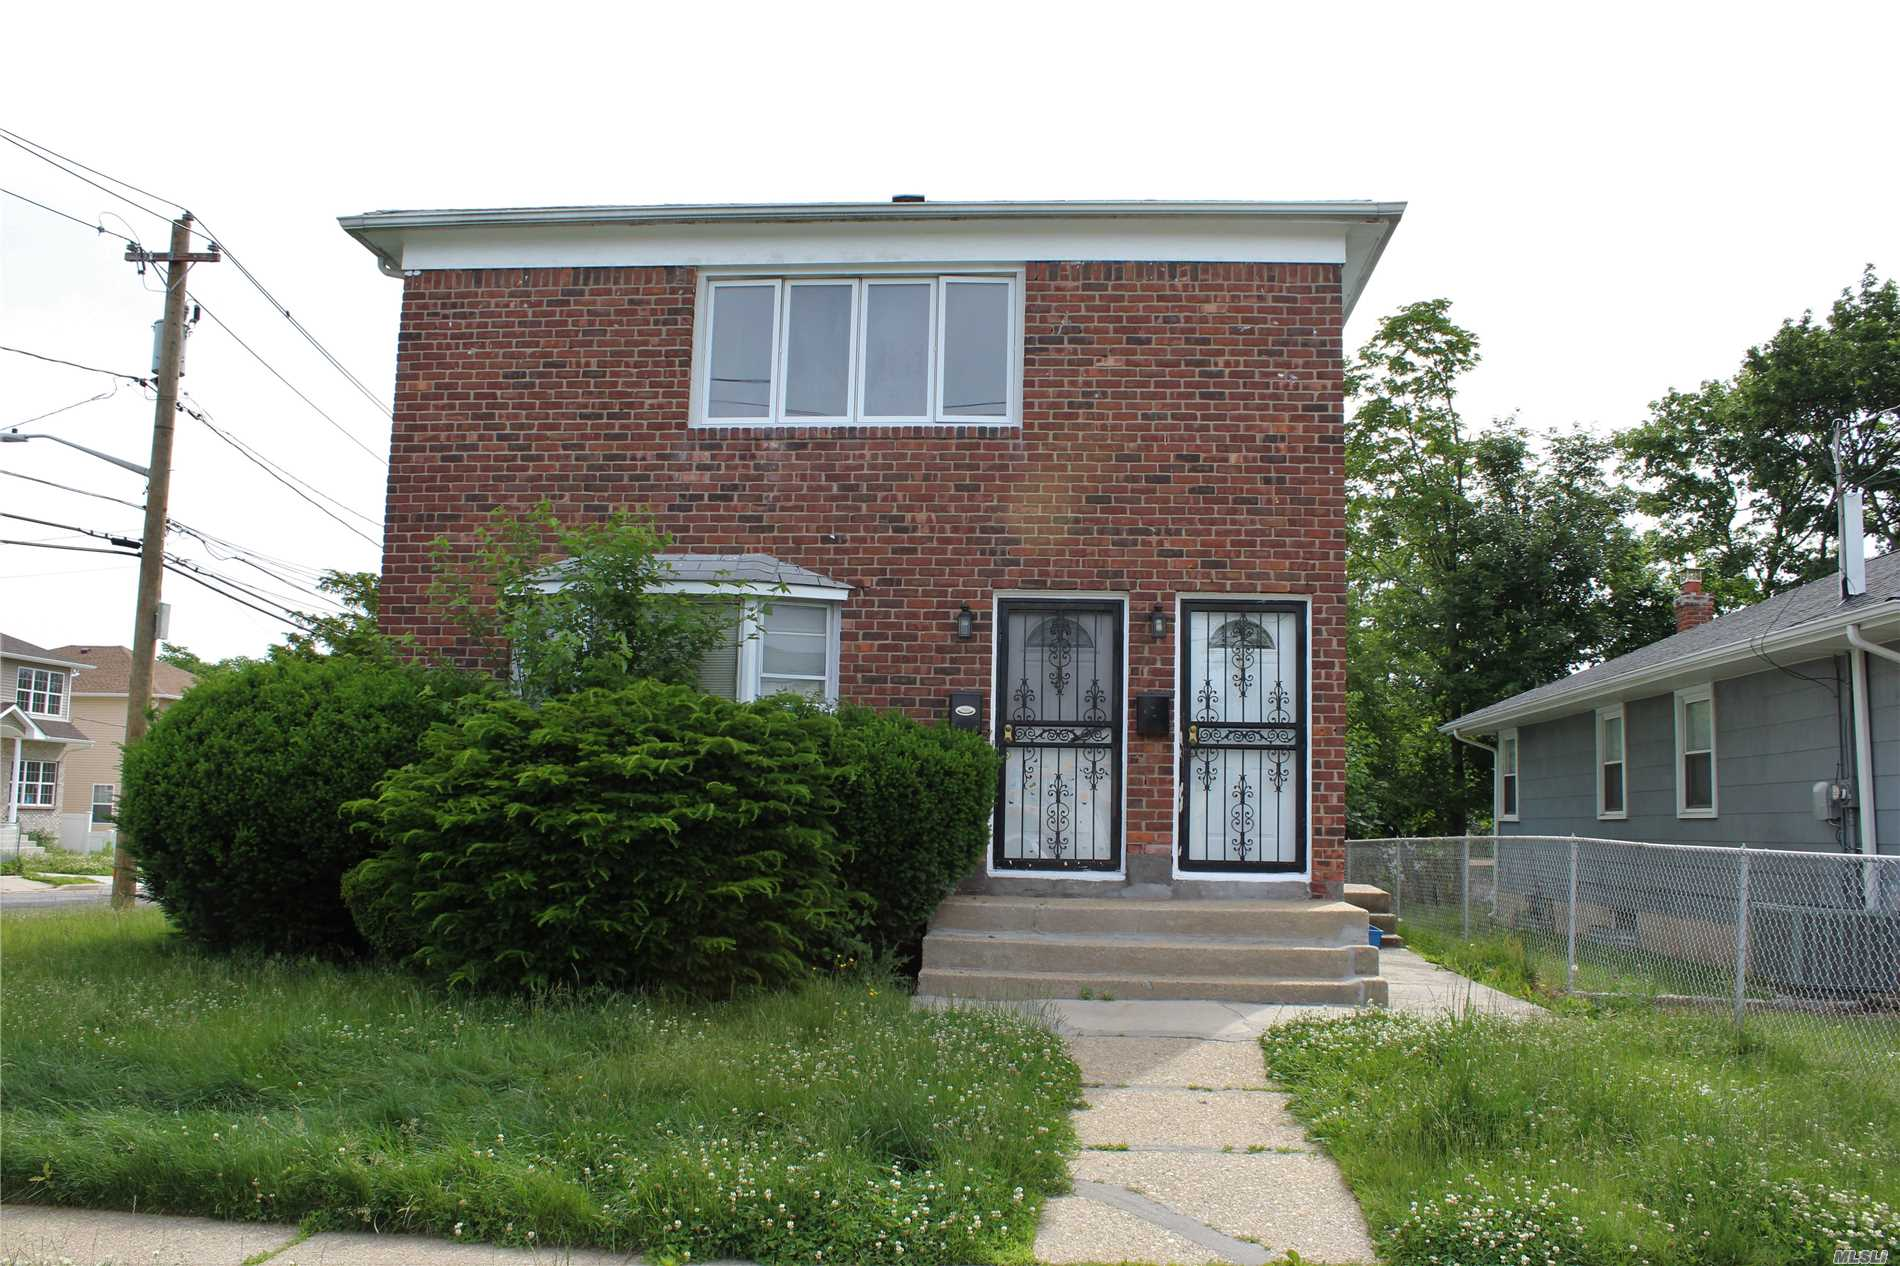 Totally Renovated 2 Family Located In Hempstead, 6 Bedrooms, 2 Full Baths, Ss Appliances , Wood Floors Throughout, Cac Cooling, Full Finished Basement, Private Driveway And Street Parking.